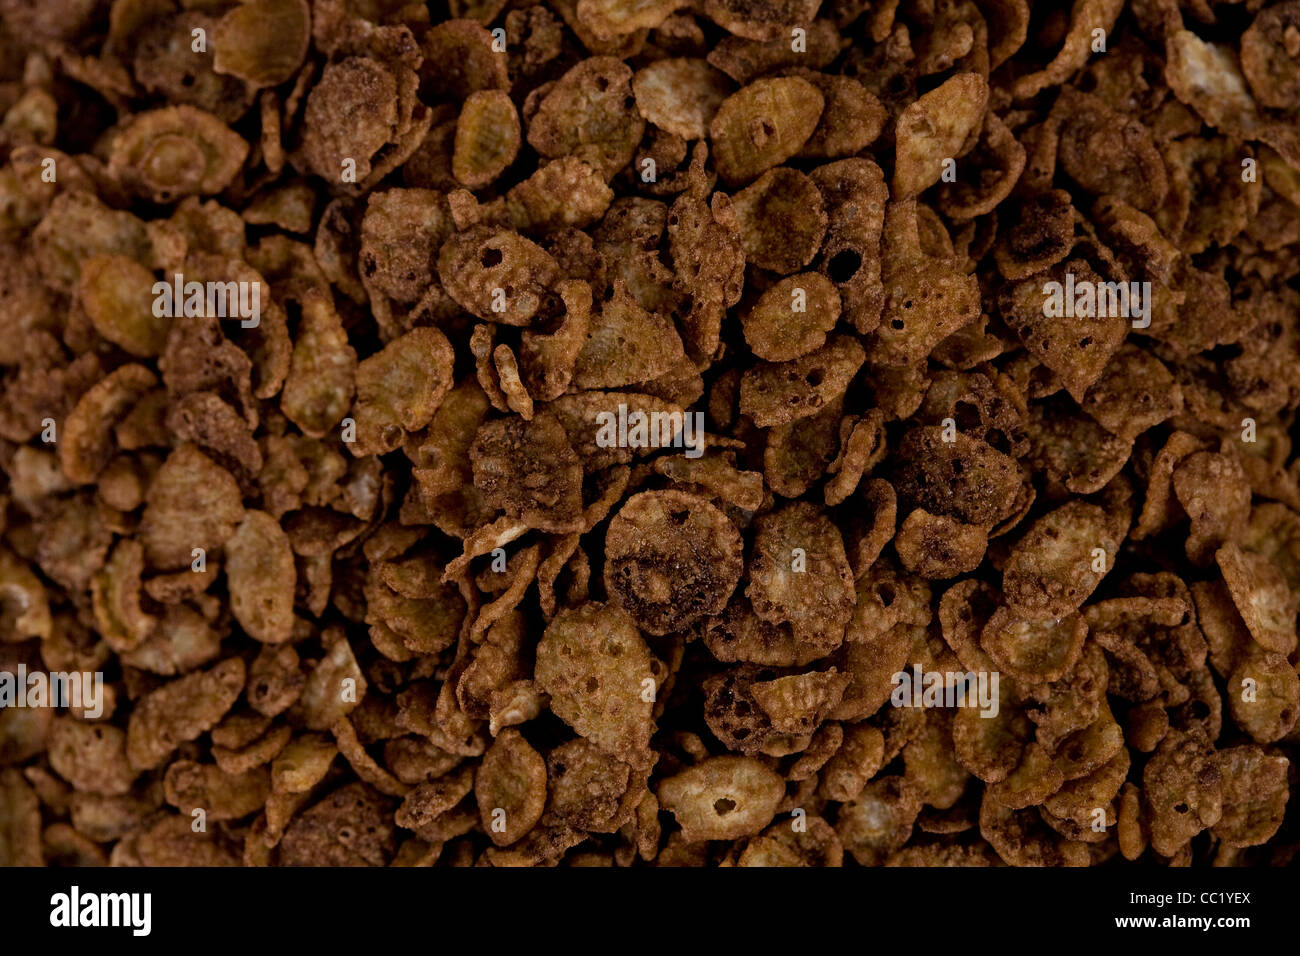 Cocoa Pebbles breakfast cereal. - Stock Image